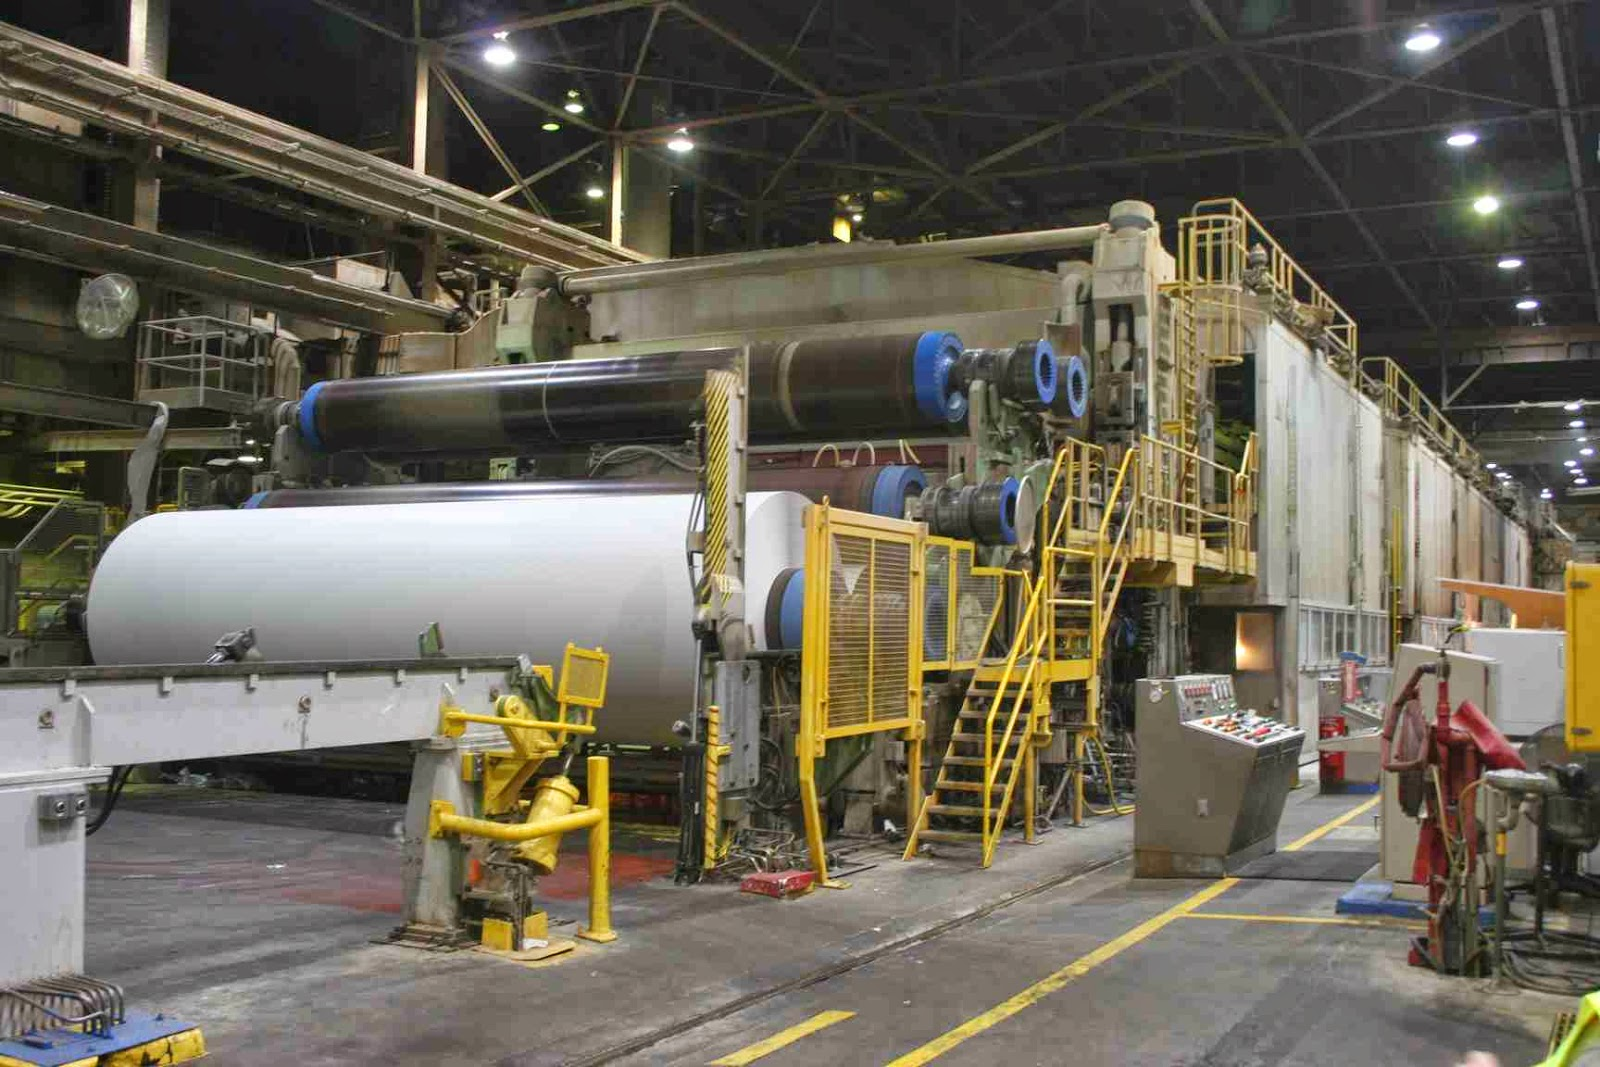 southern pulp and paper The center tests and validates new process and product concepts for industries in a variety of key market sectors including: pulp and paper, chemicals, non-woven materials, and the emerging biomass-to-energy industry.